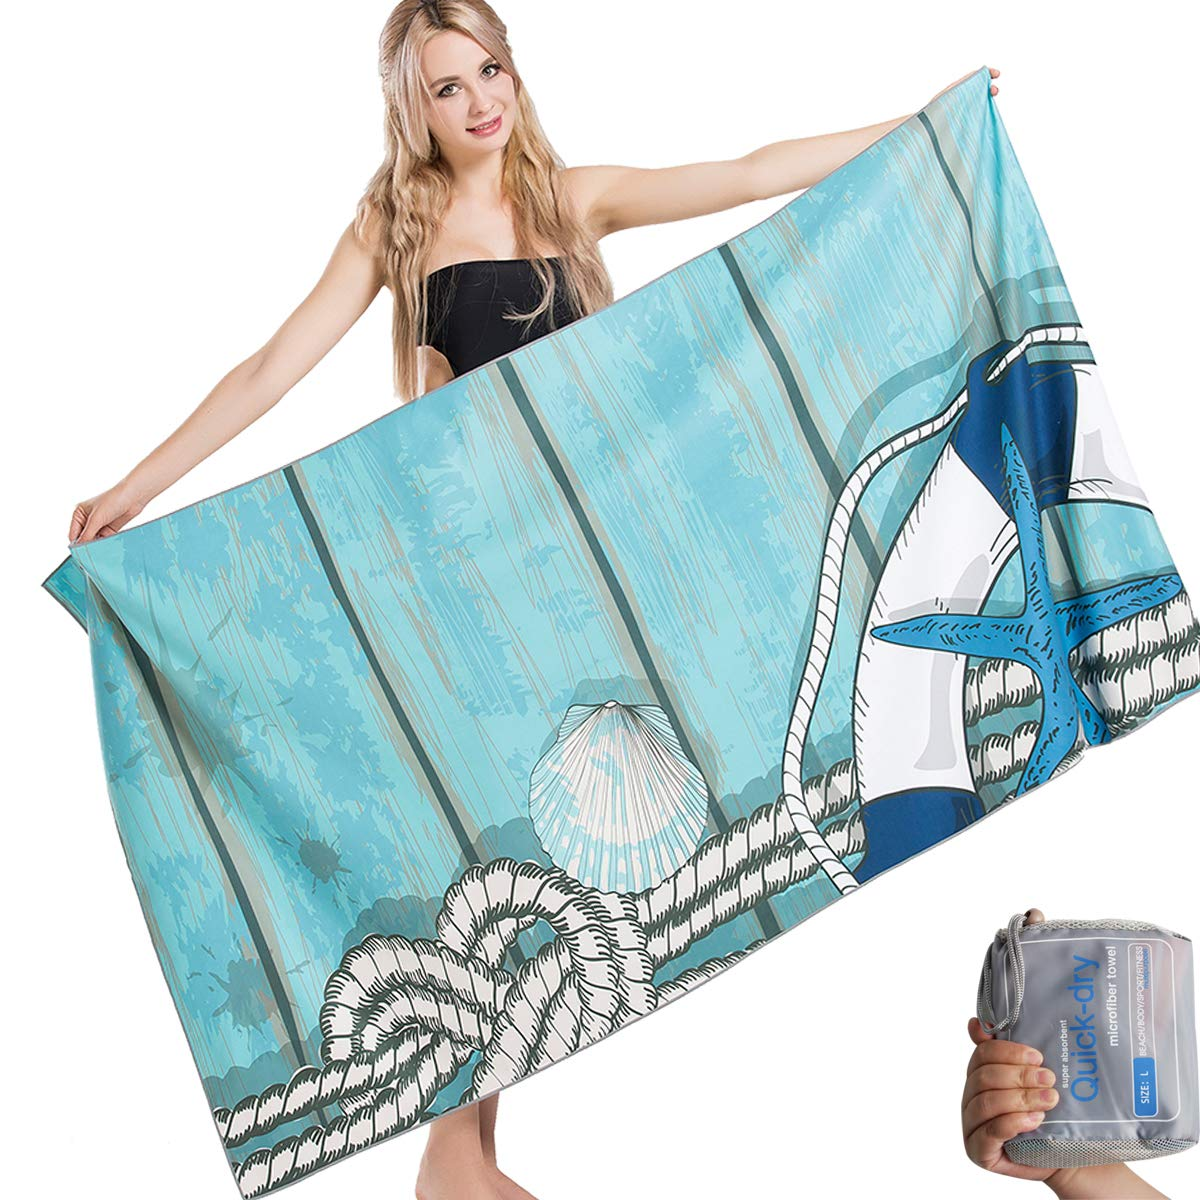 HAPEE Microfiber Beach Towels Overlarge XL 67x35in for Sports, Travel,Swim,Pool- Quick Dry Super Absorbent Lightweight by HAPEE